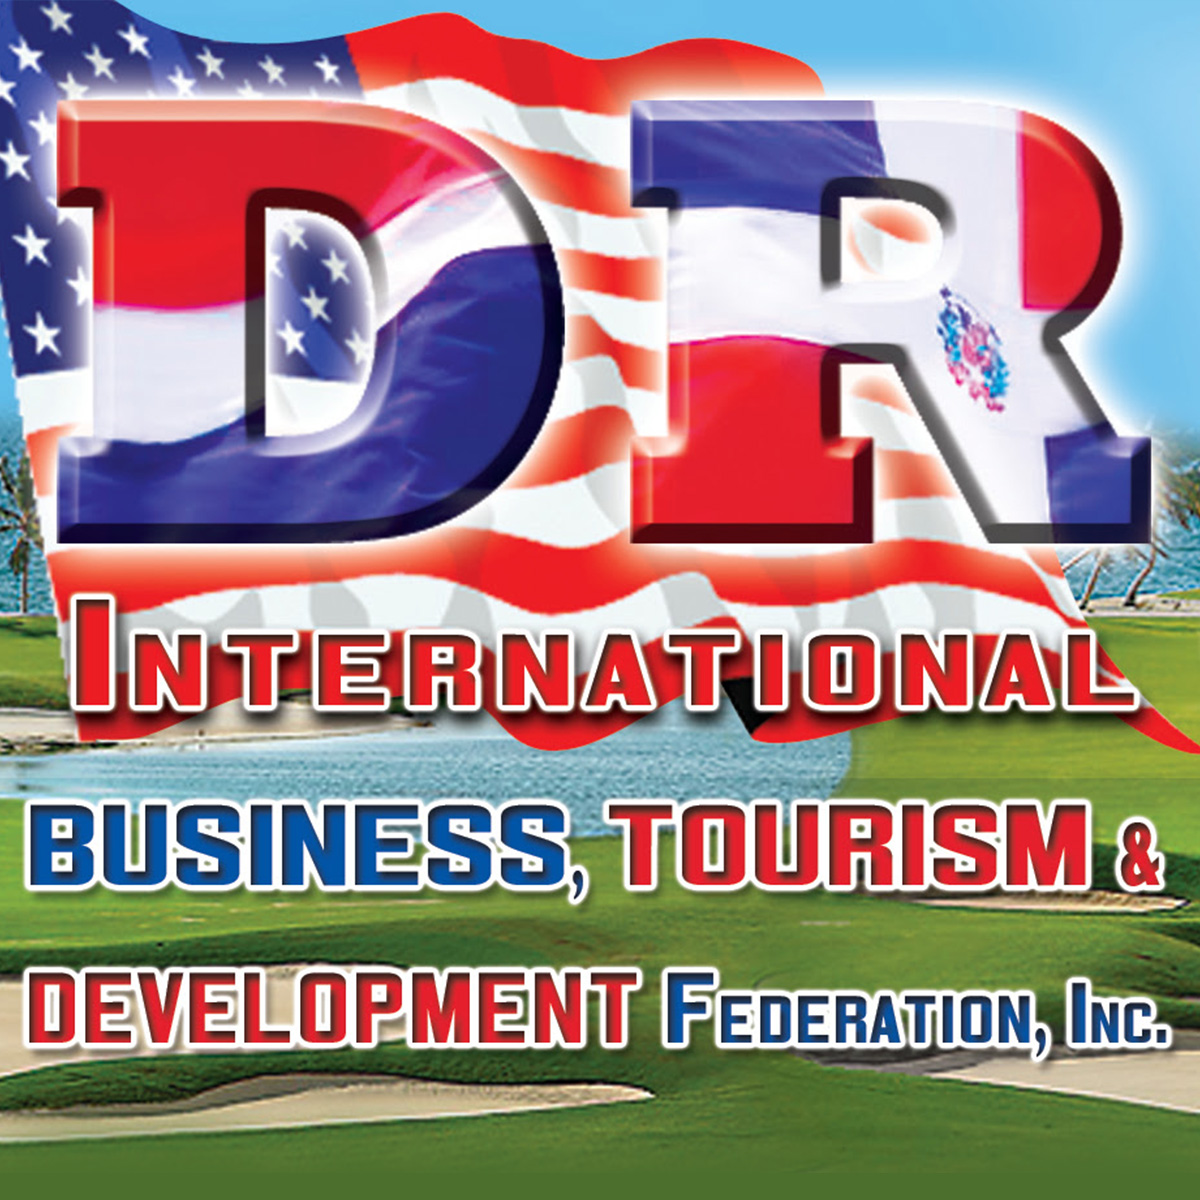 DOMINICAN INTL BUSINESS & TOURISM CHAMBER, INC.